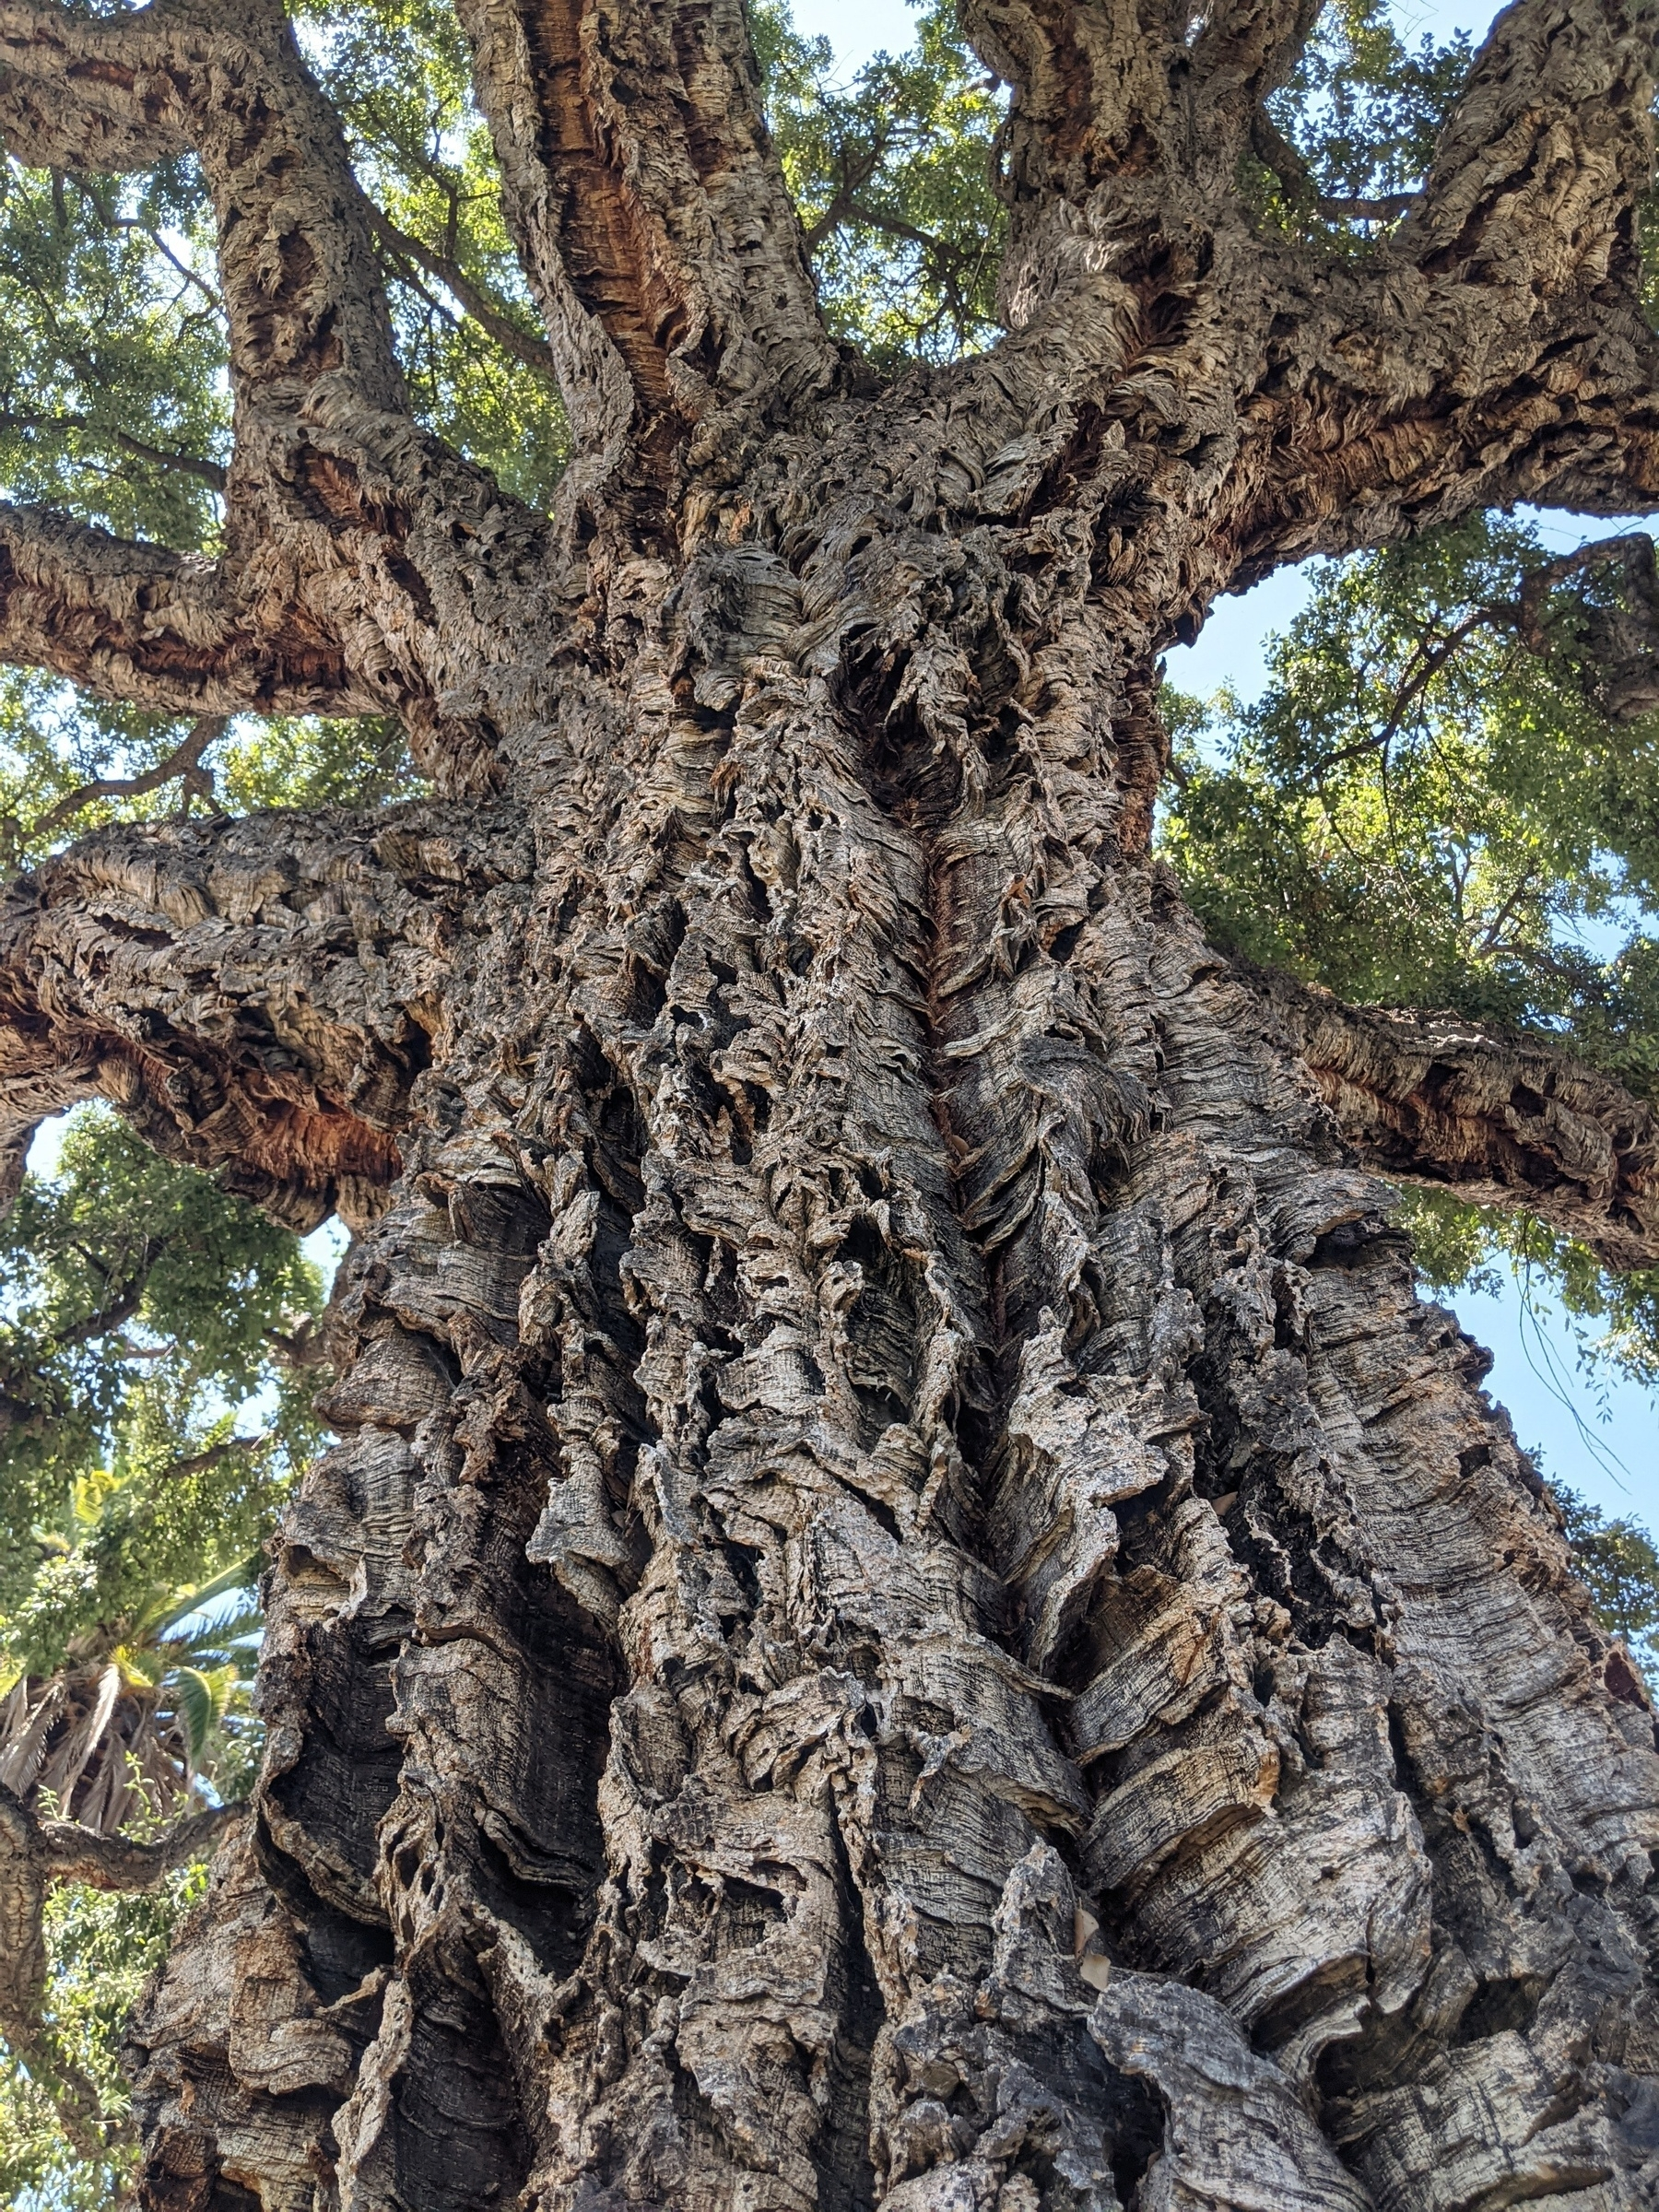 A close up of the bark of a cork oak tree looking up to the branches